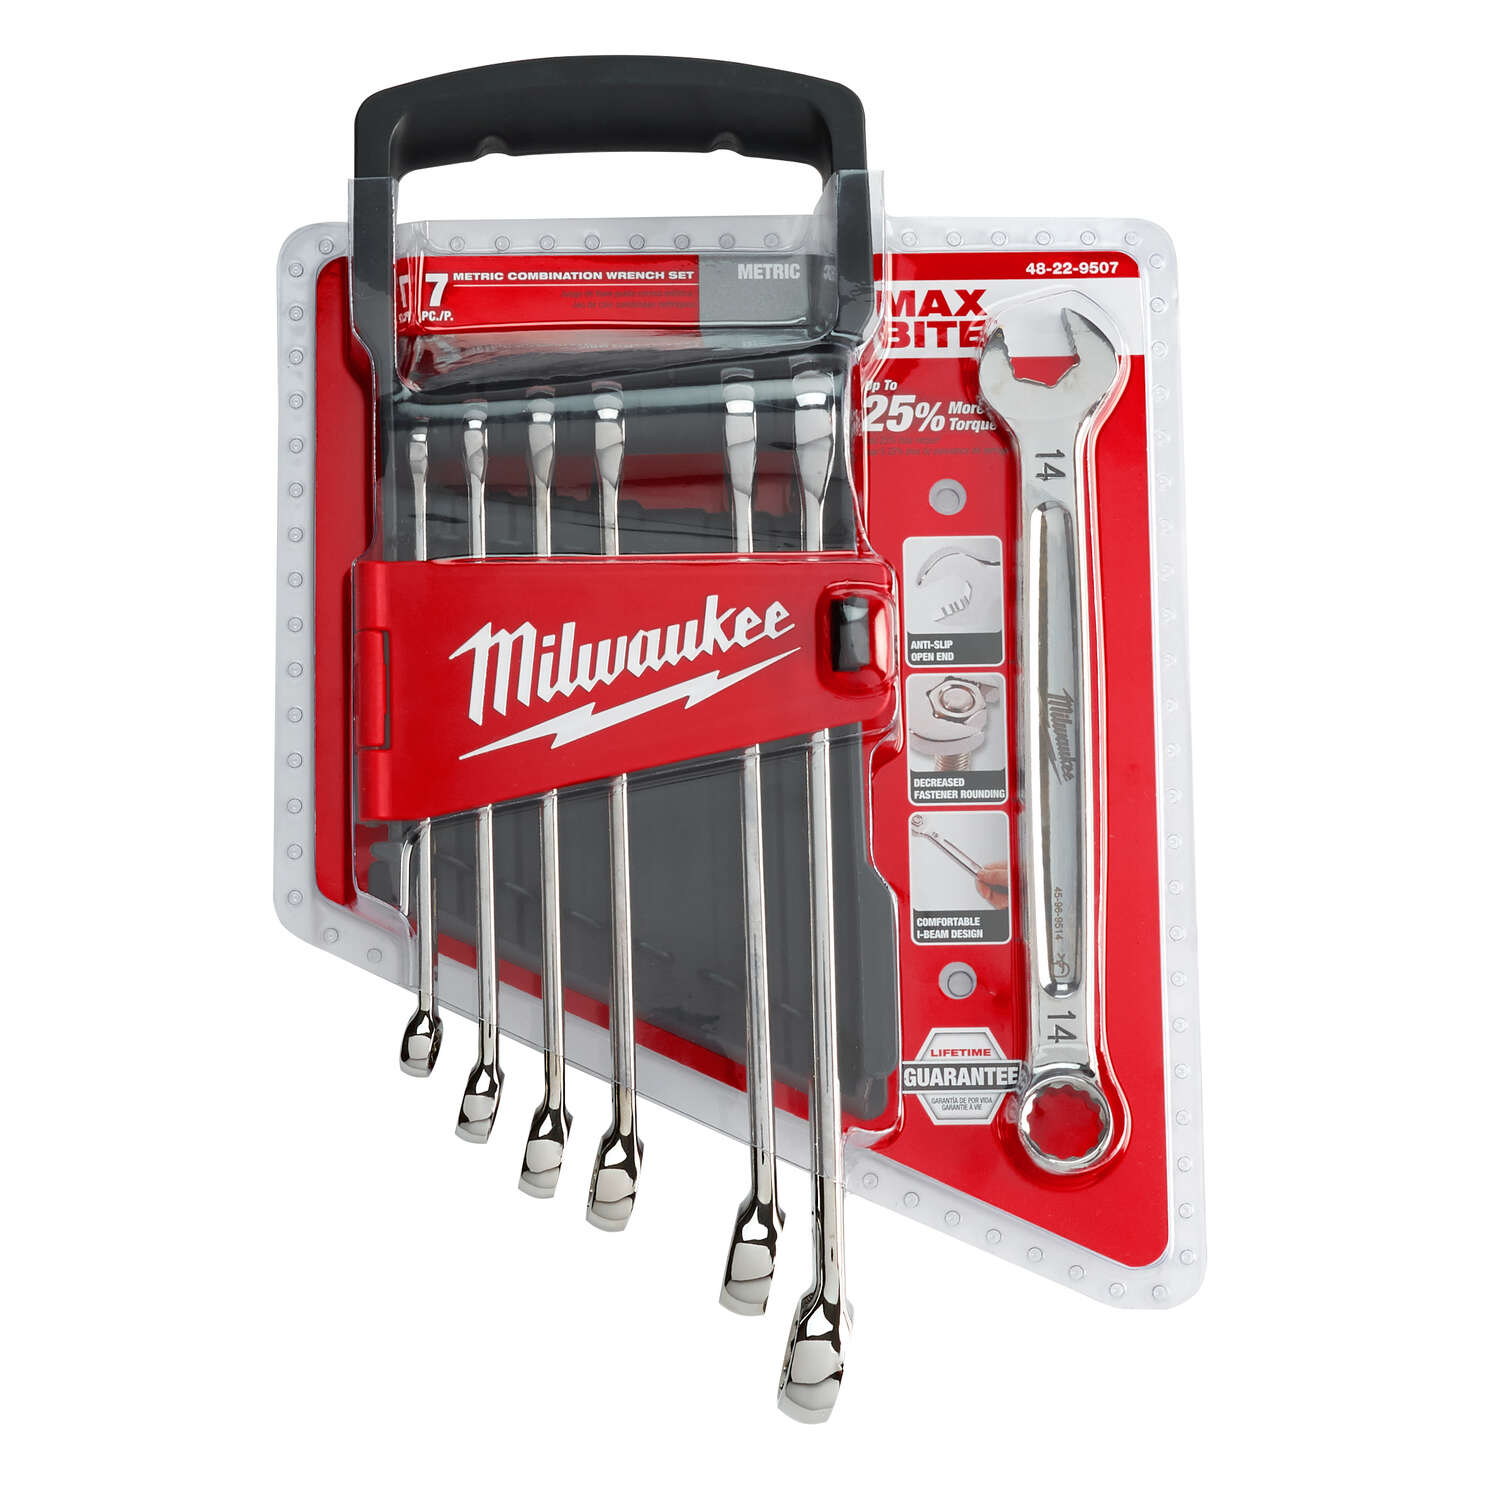 Milwaukee  MAX BITE  various   x various   Metric  Combination  7 pc. Wrench Set